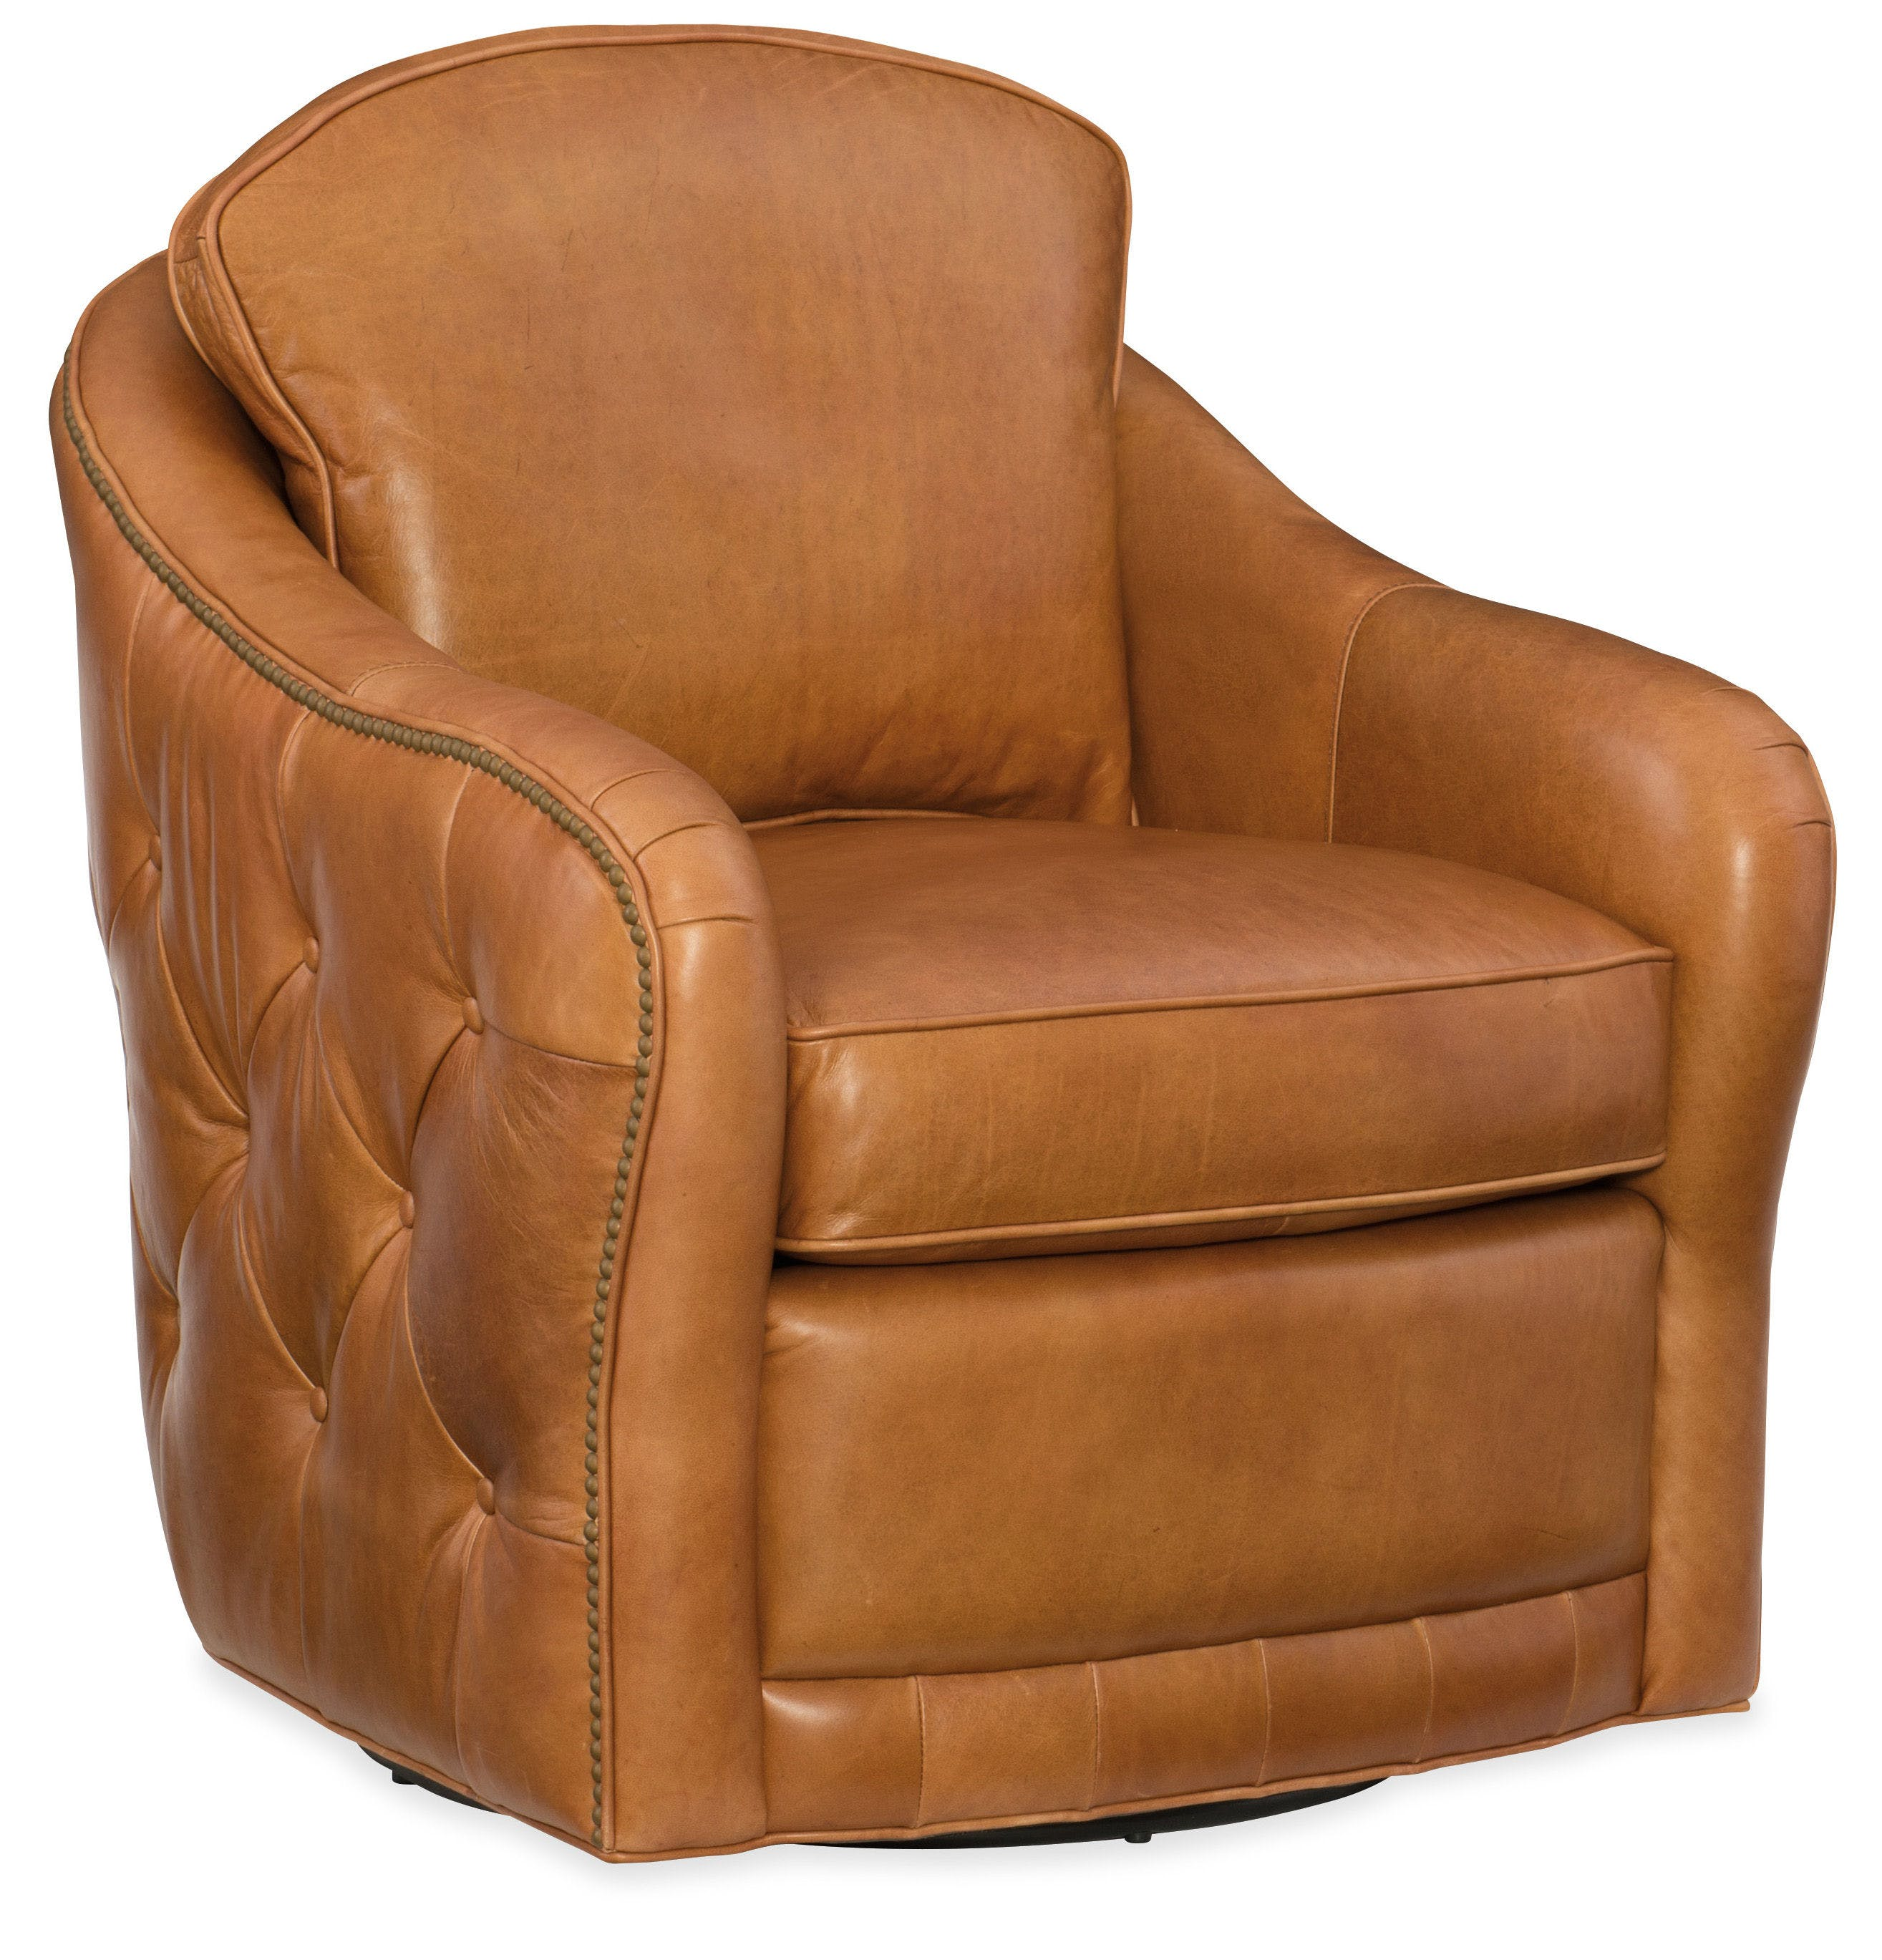 Hooker Furniture Living Room Hilton Swivel Club Chair